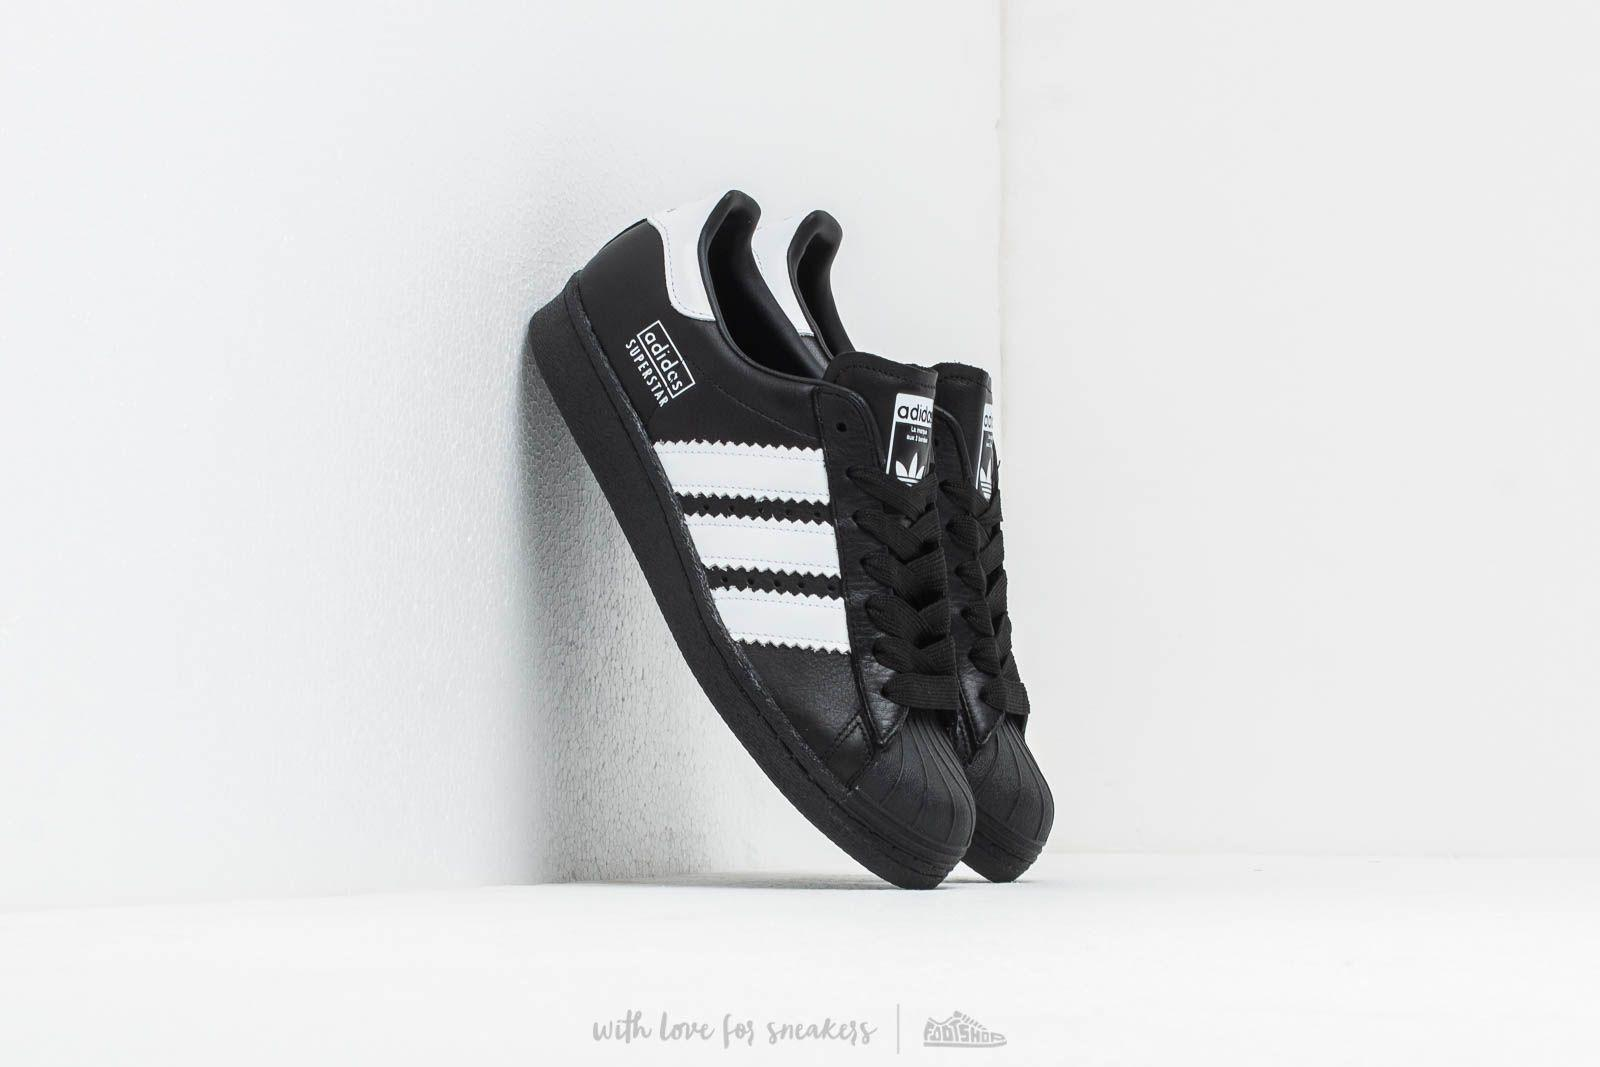 new arrival 78036 e4e30 adidas Originals. Mens Adidas Superstar 80s Core Black Ftw White ...